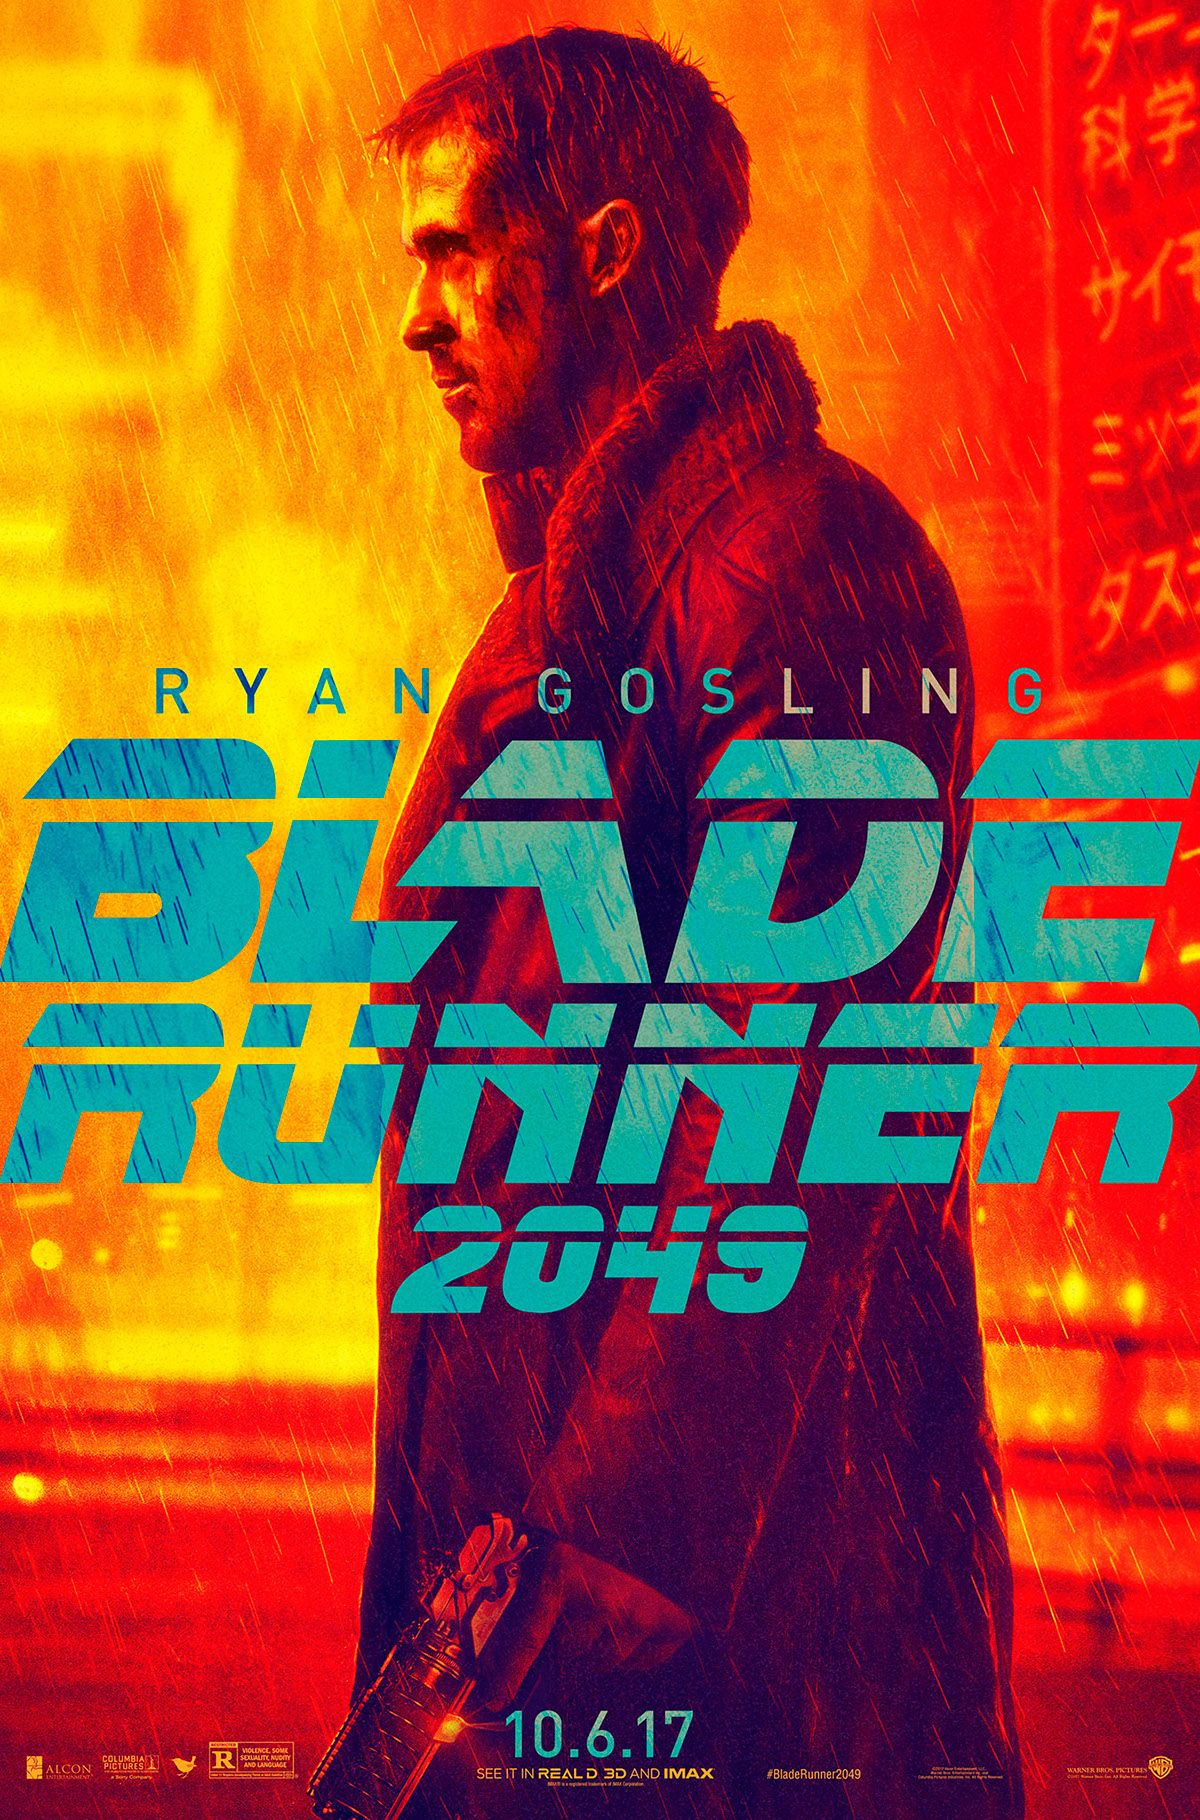 Behind The Art Direction Brand Identity Of Blade Runner 2049 Blade Runner Blade Runner 2049 Movie Posters